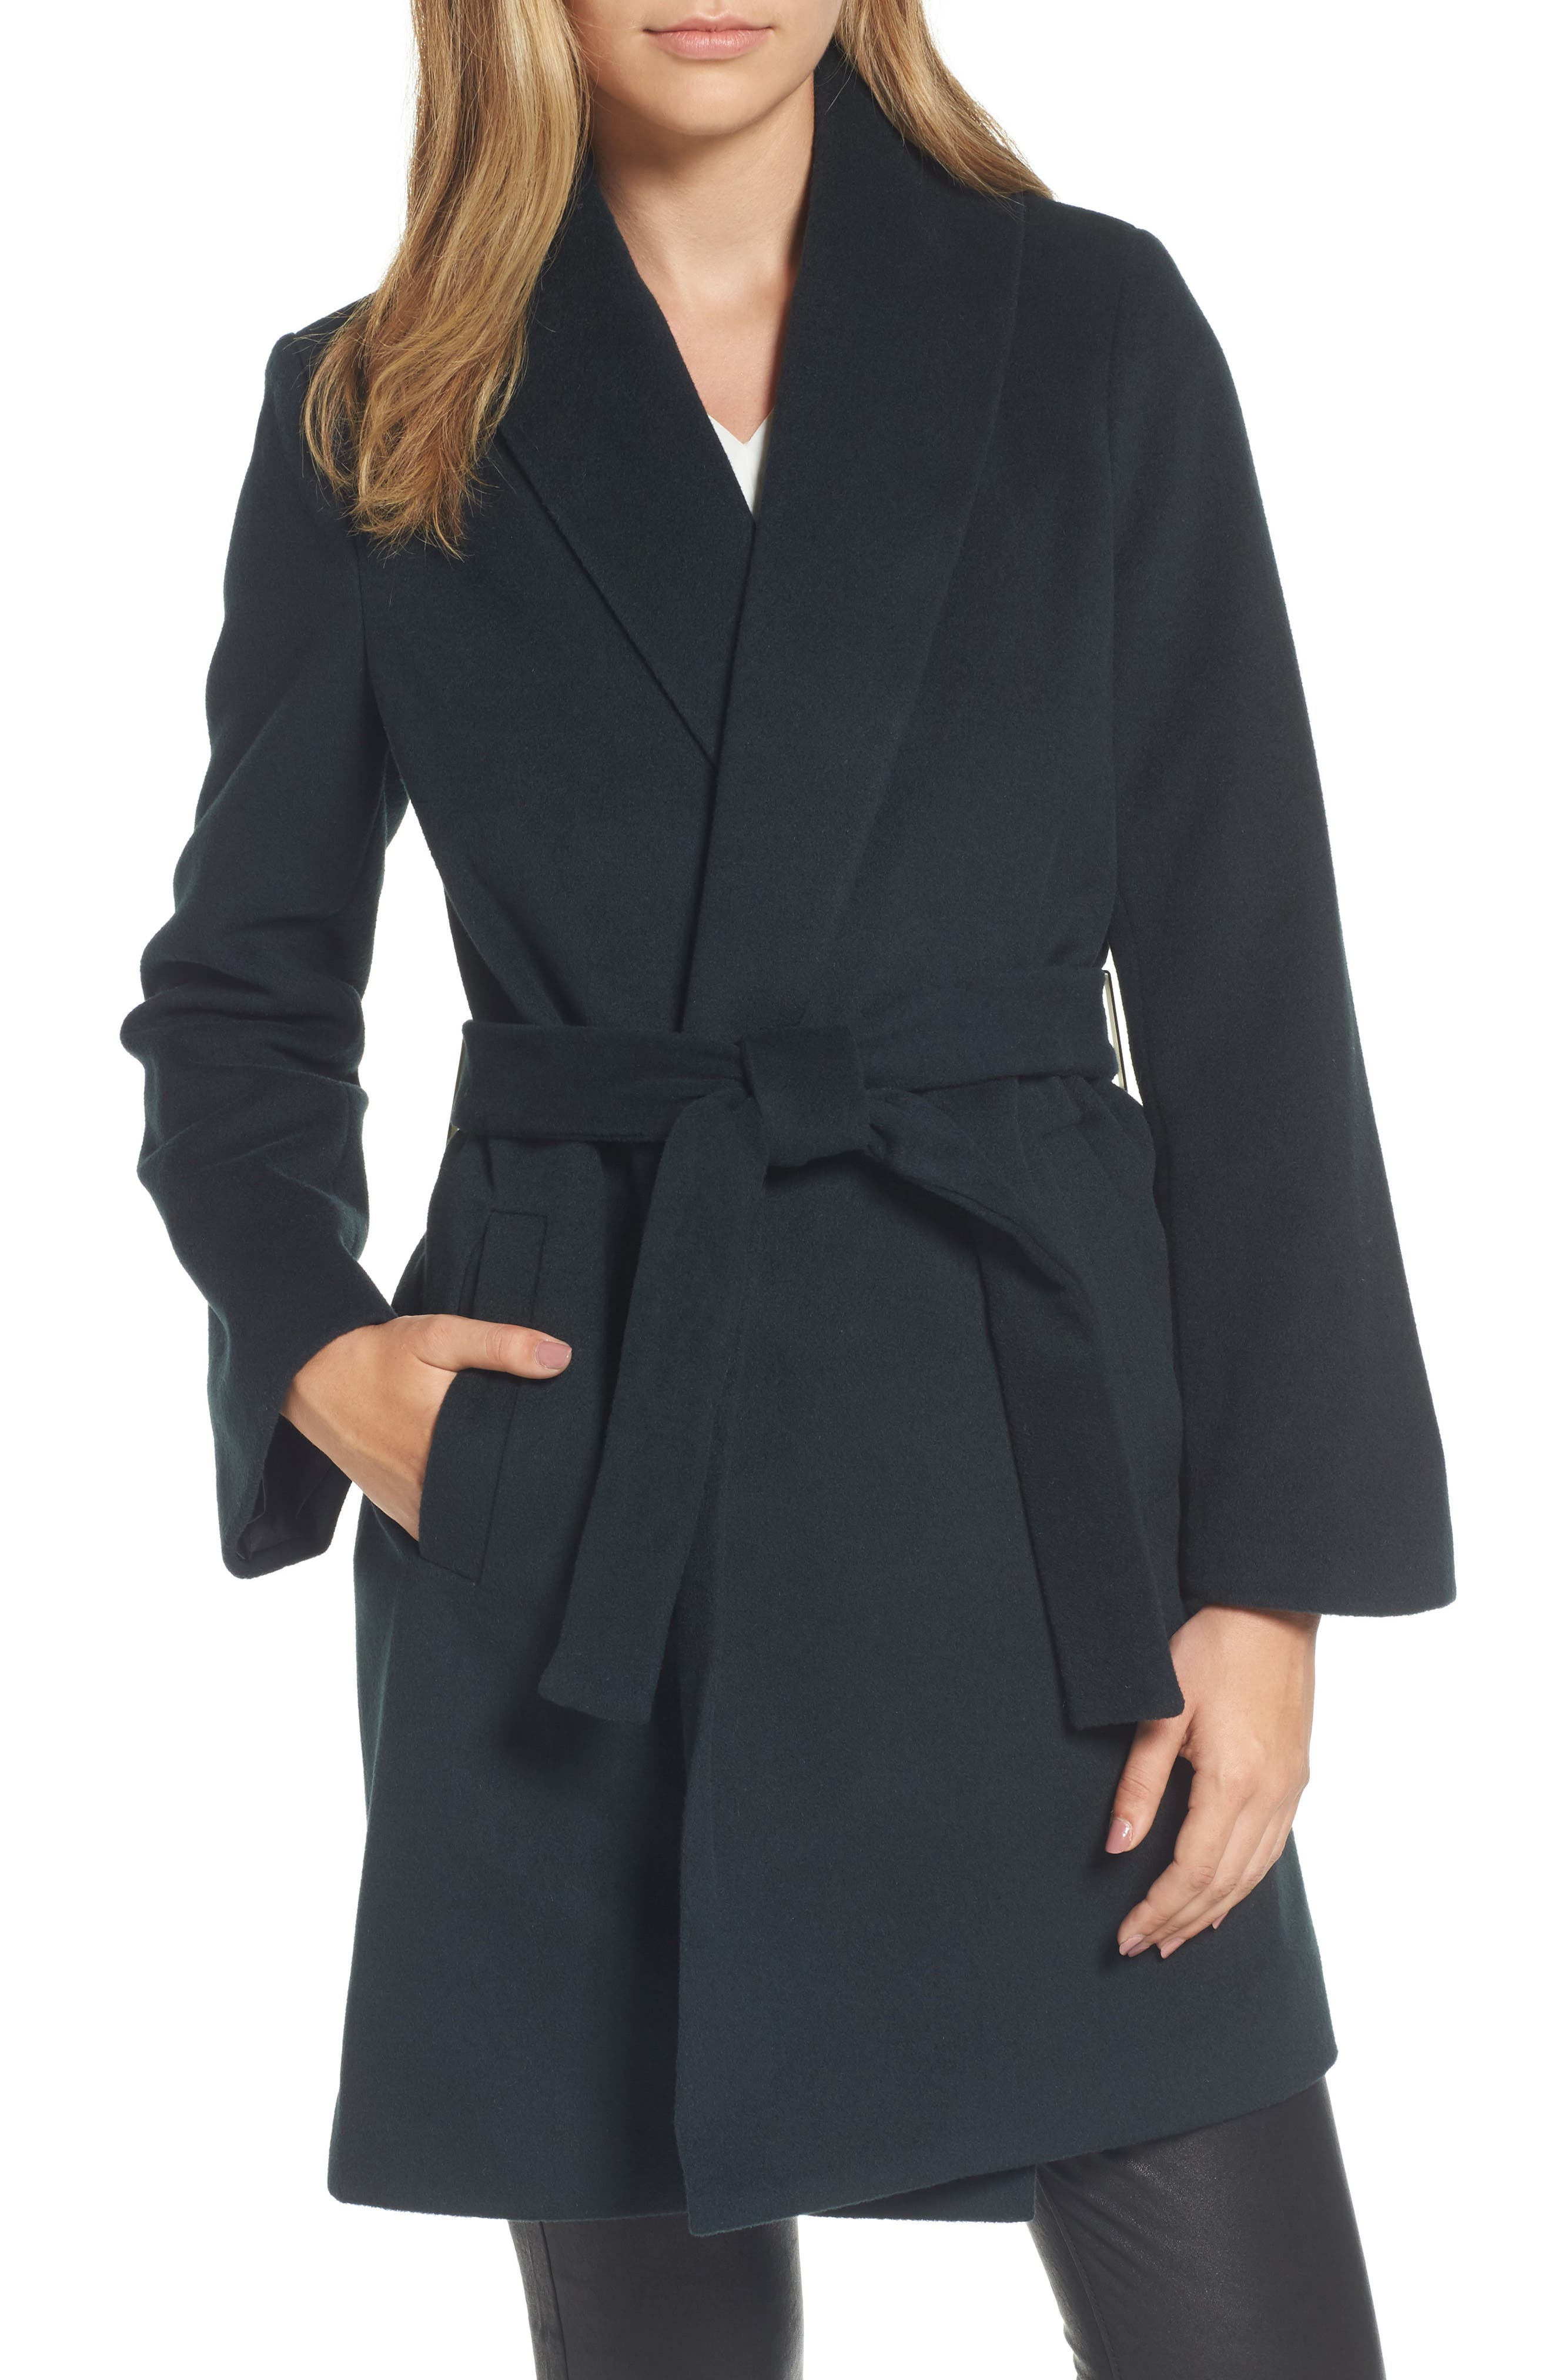 Alternate Image 1 Selected - Tahari Gabrielle Wool Blend Long Wrap Coat